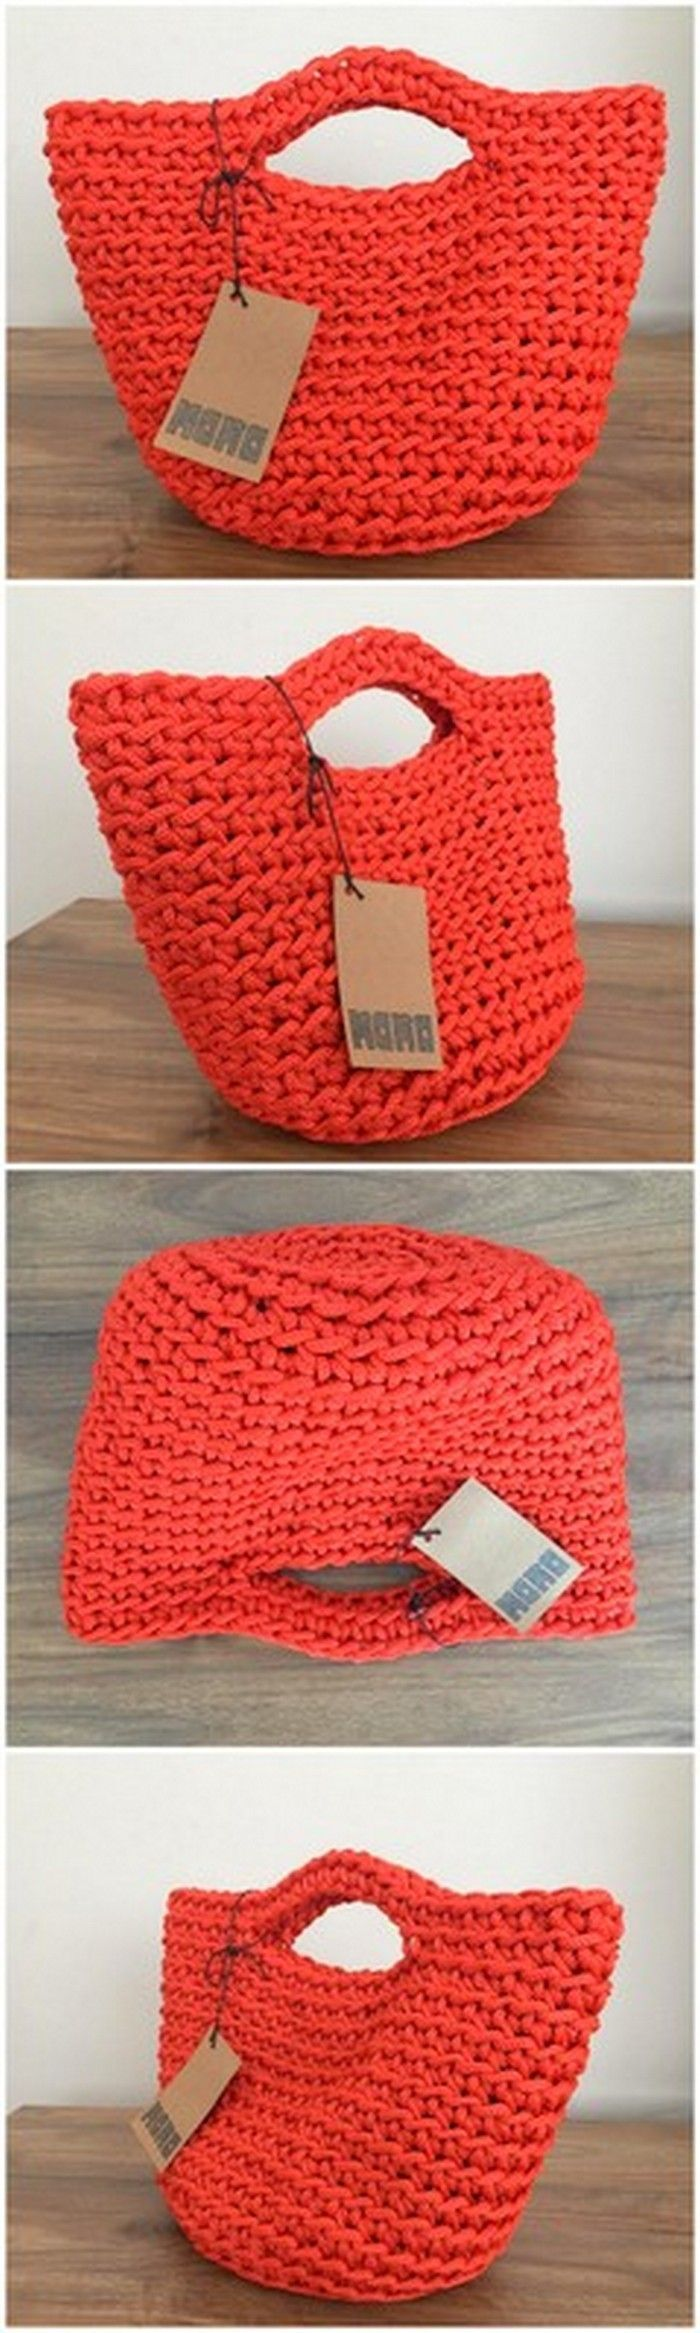 40 Wonderful Crochet Ideas To Try In First Free Time - Crochet -